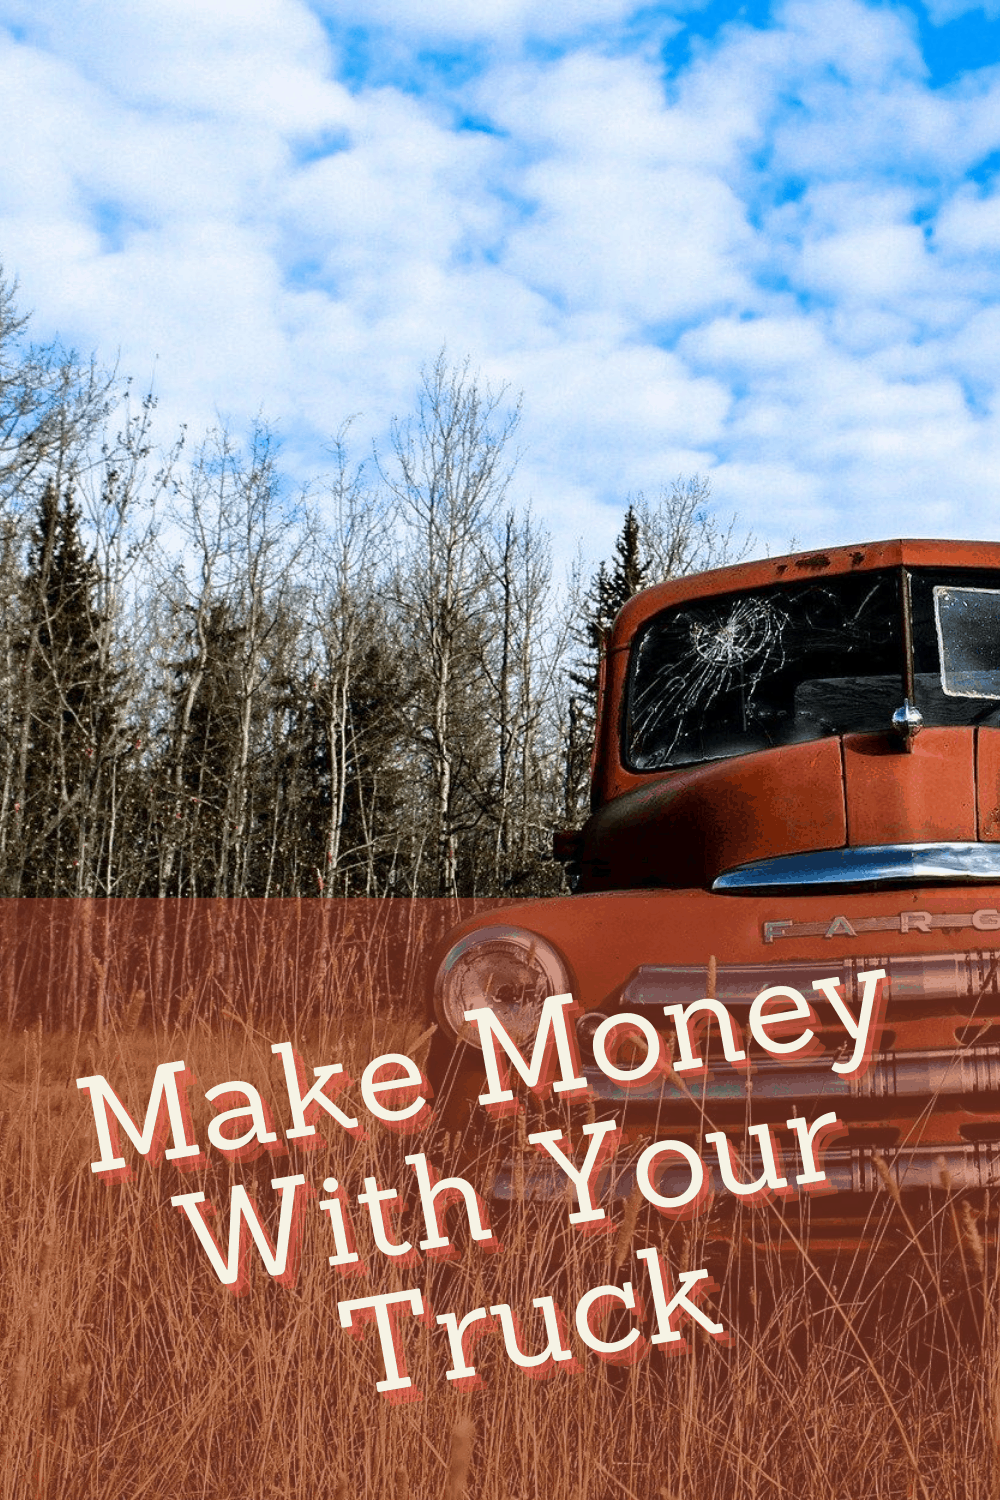 Making money with your pickup truck